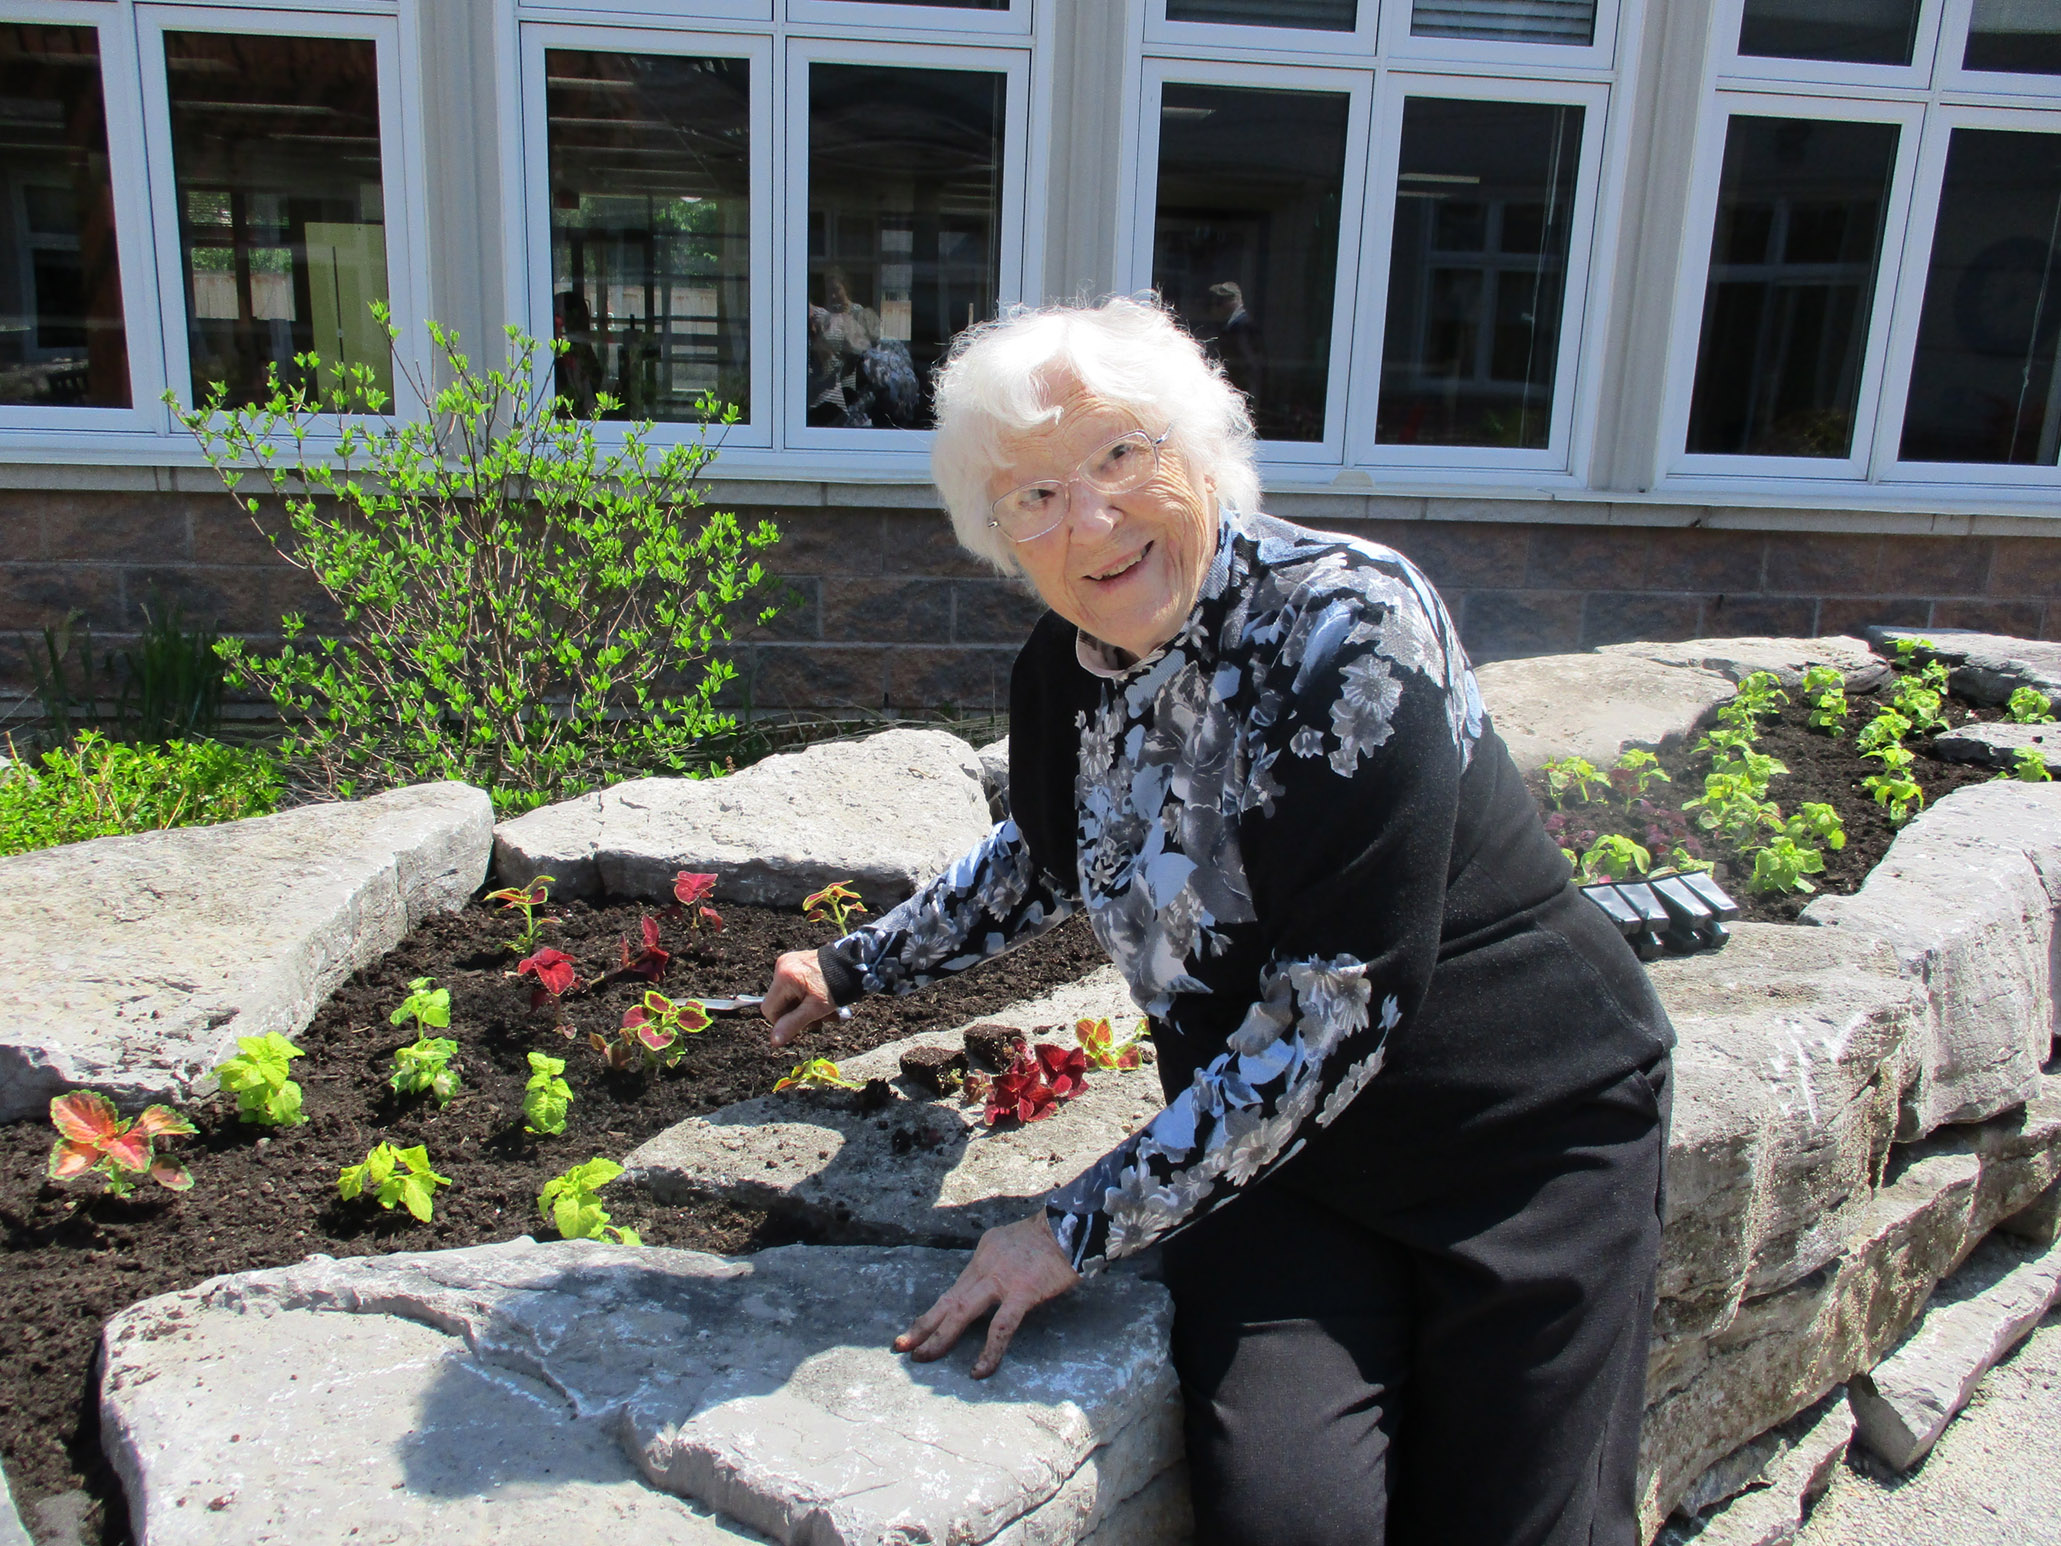 A senior planting flowers in the garden on a beautiful summer day.